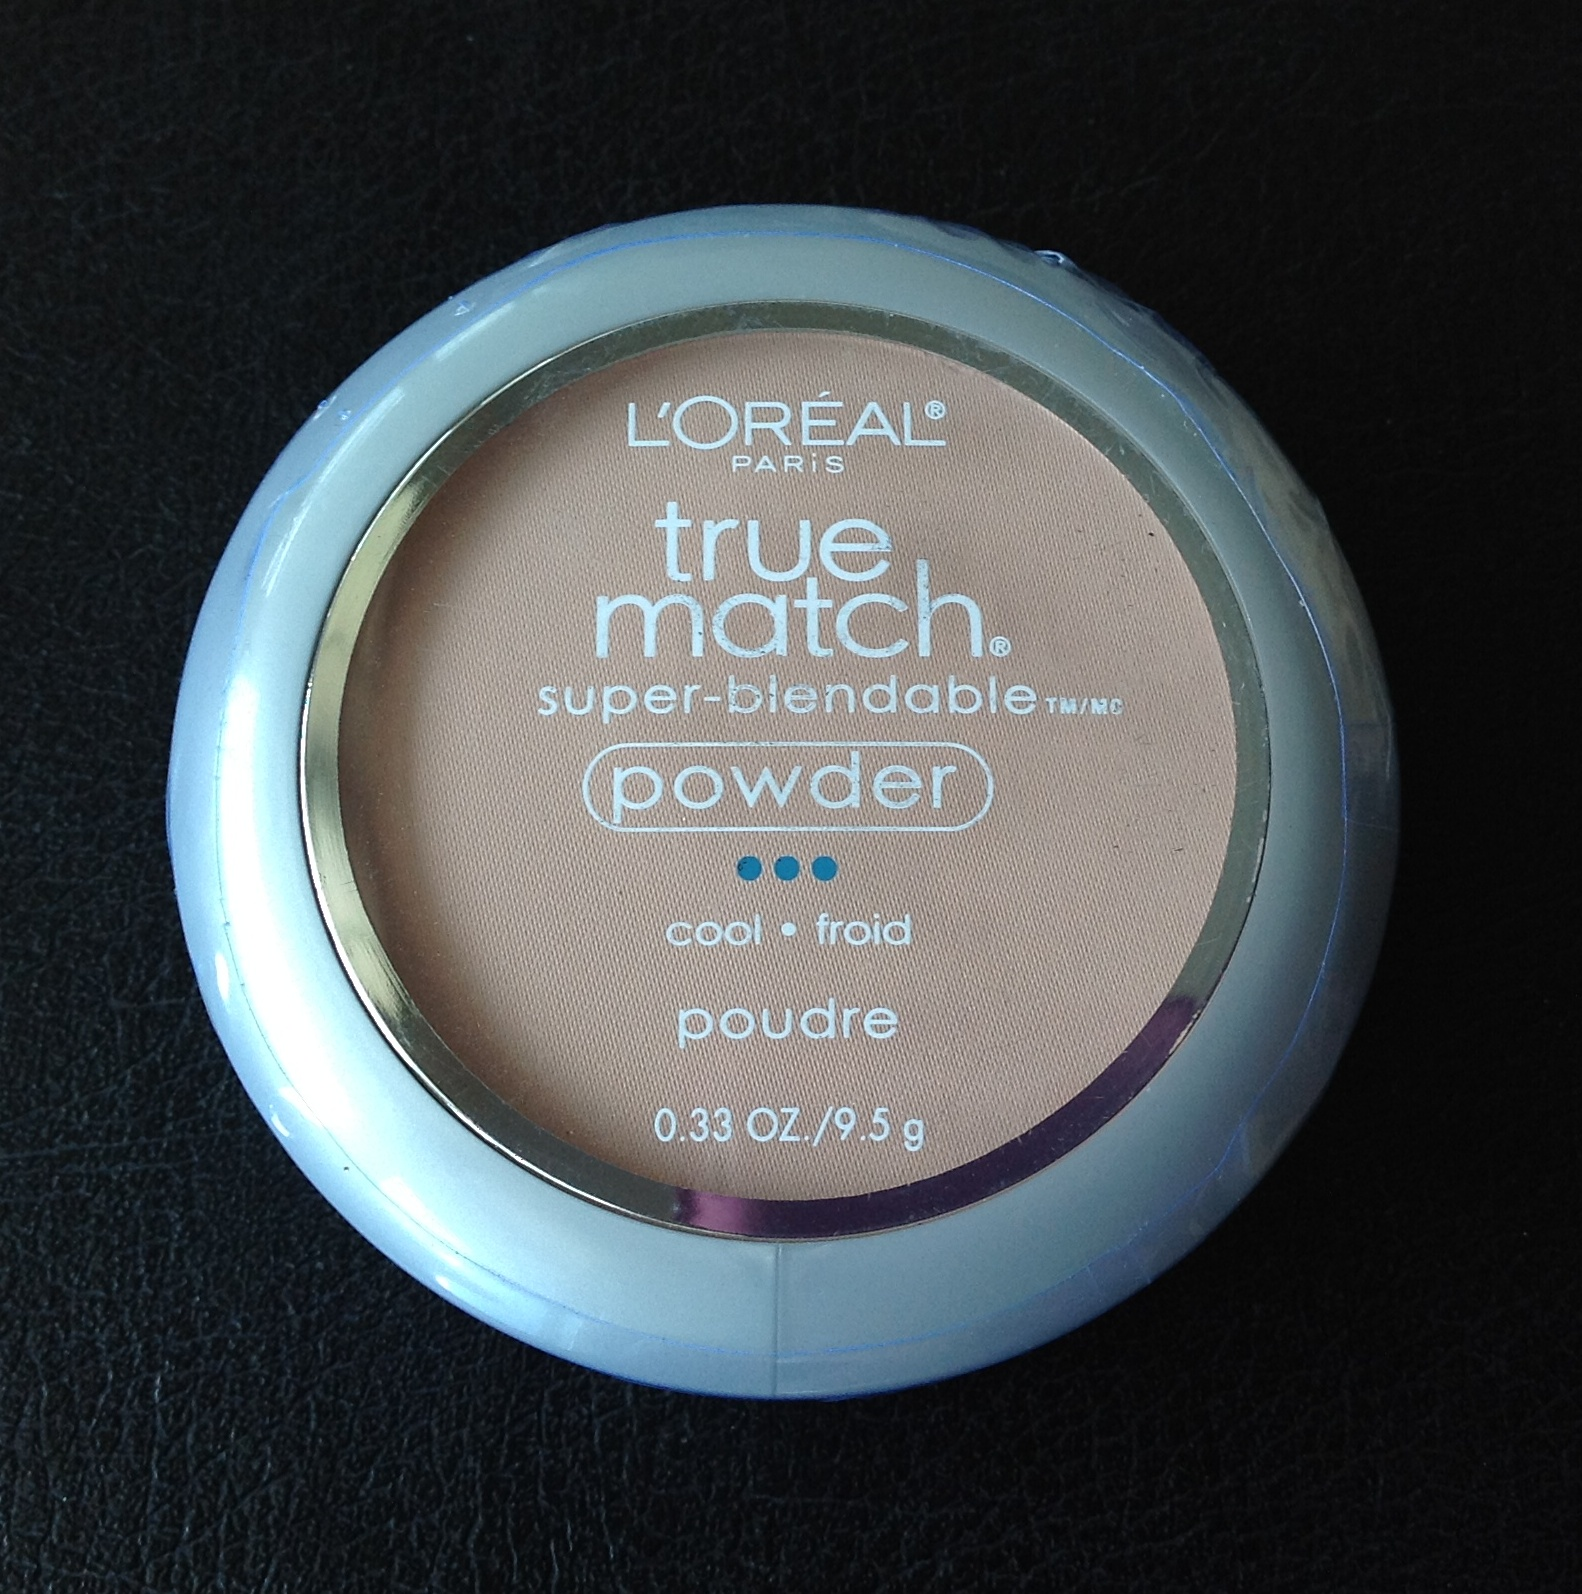 My Kikay Stuff Loreal True Match Super Blendable Powder Perfecting In Natural Ivory It Comes A 95g Compact With Sponge Applicator And Mirror At The Bottom